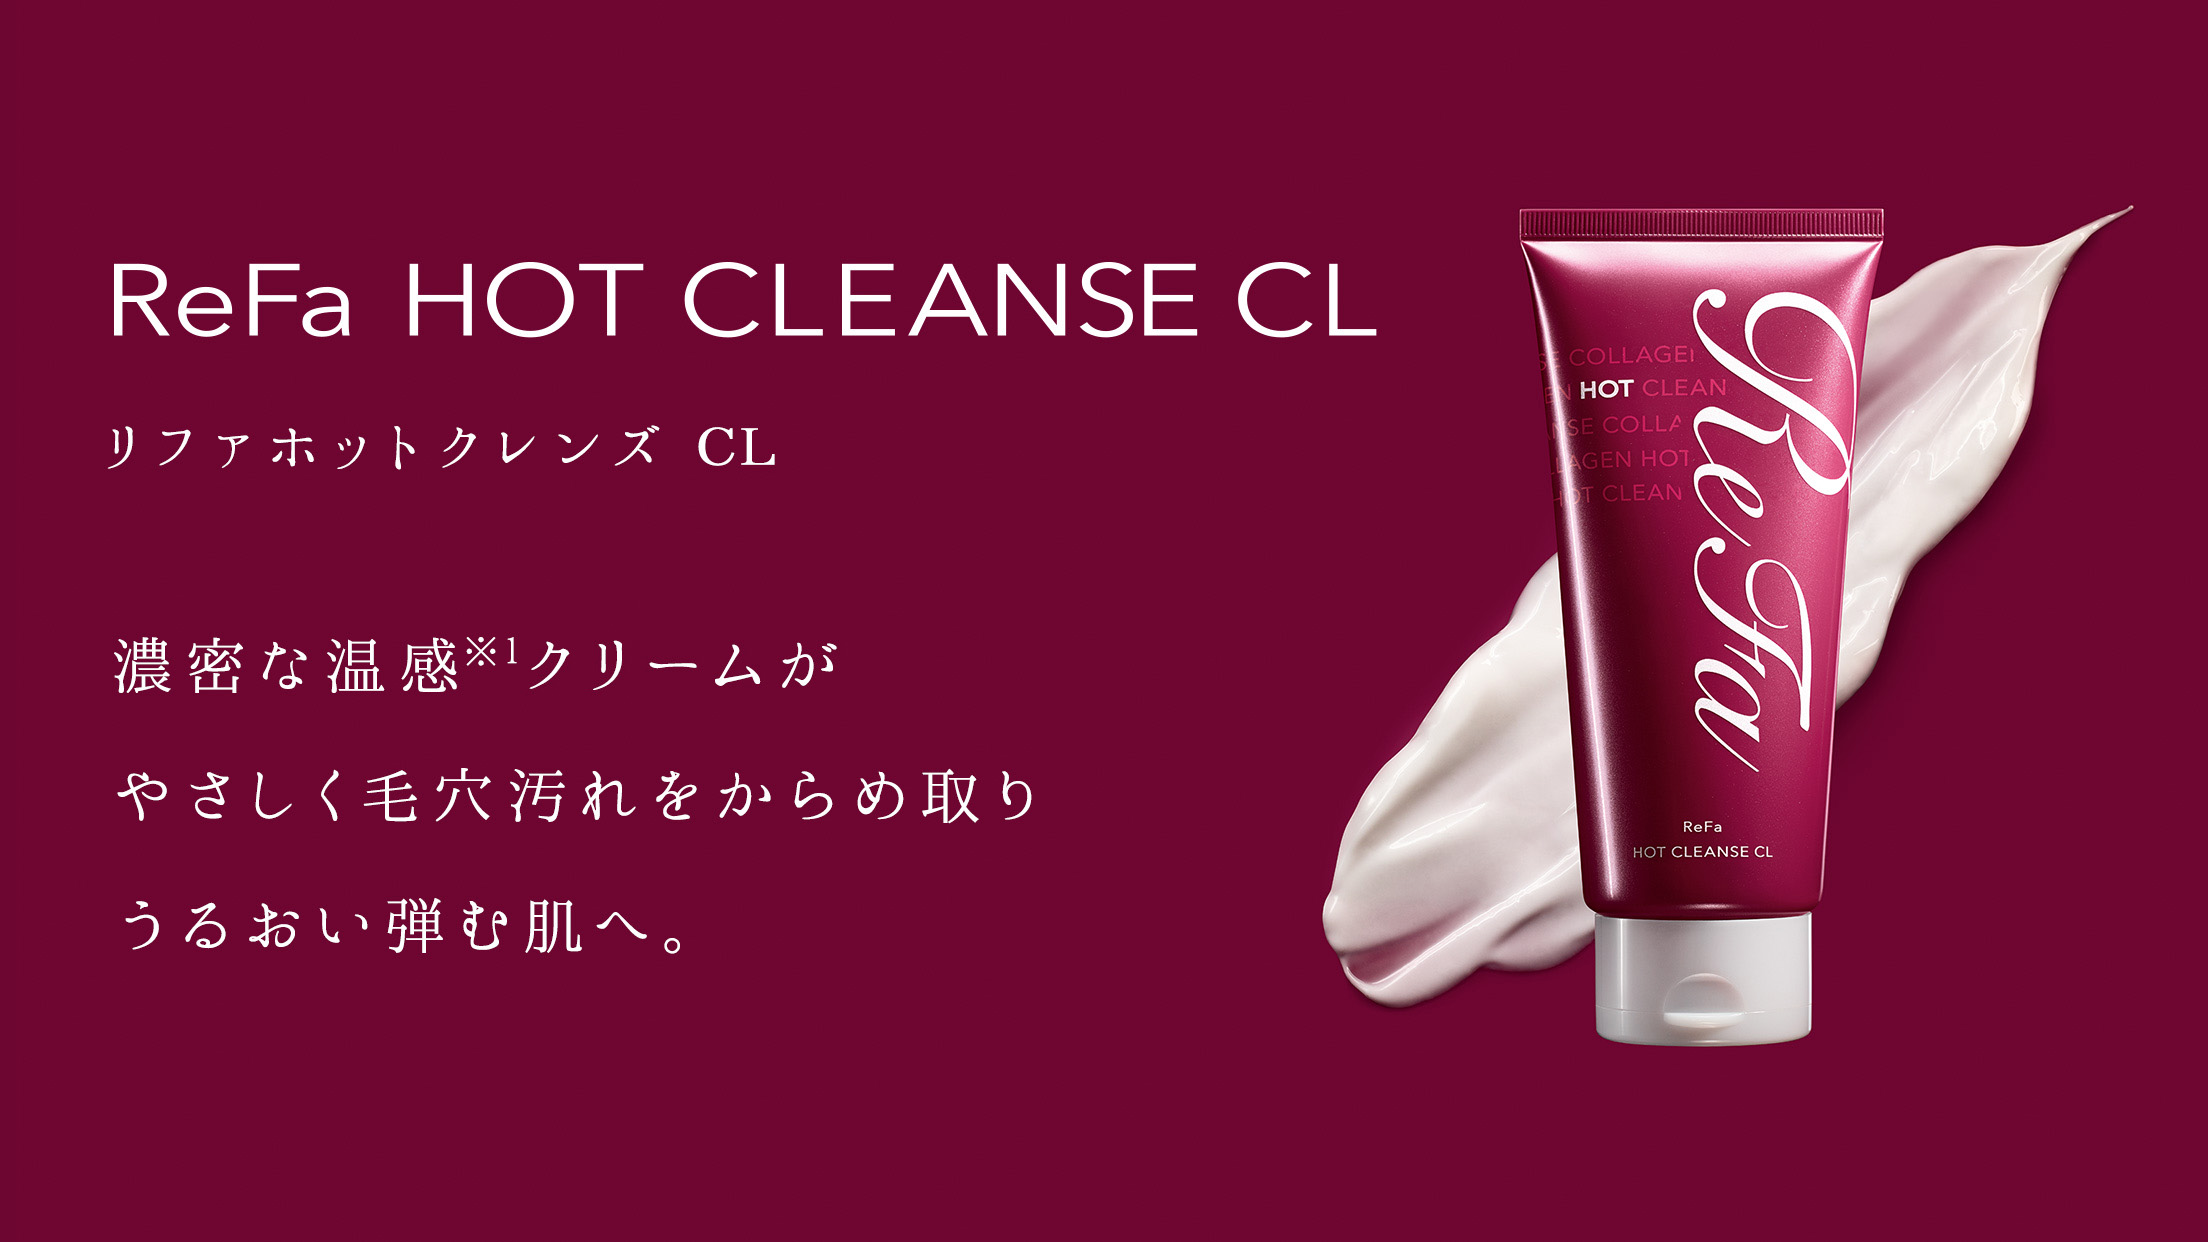 ReFa HOT CLEANSE CL(リファホットクレンズ CL)